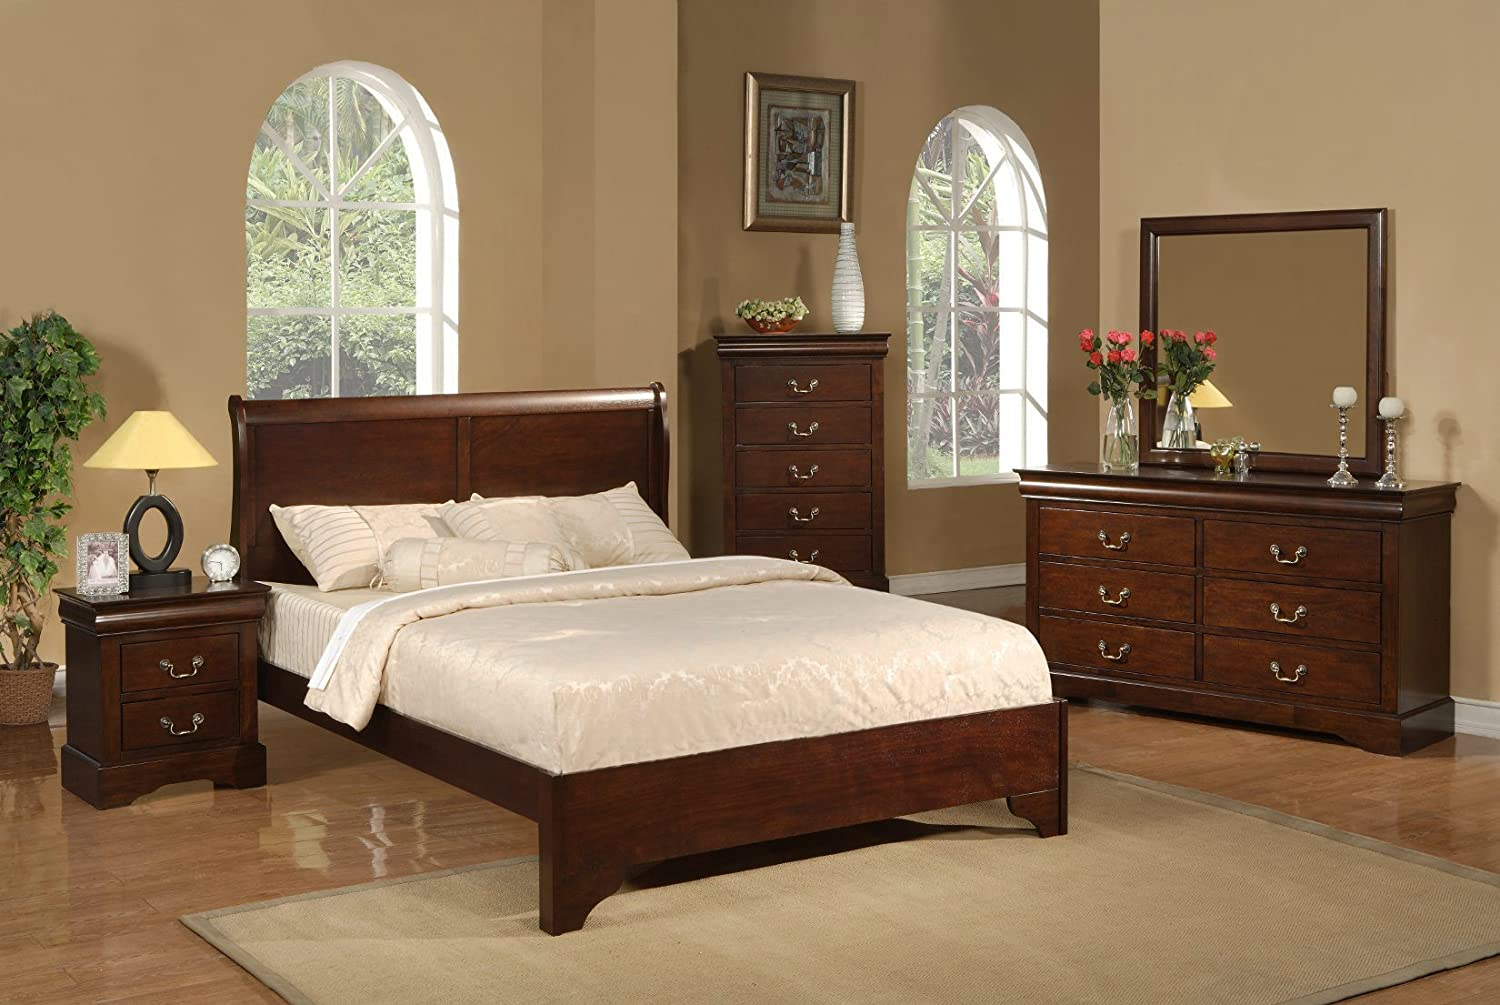 Alpine Furniture 5 Piece West Haven Sleigh Bed Set - King - Cappuccino